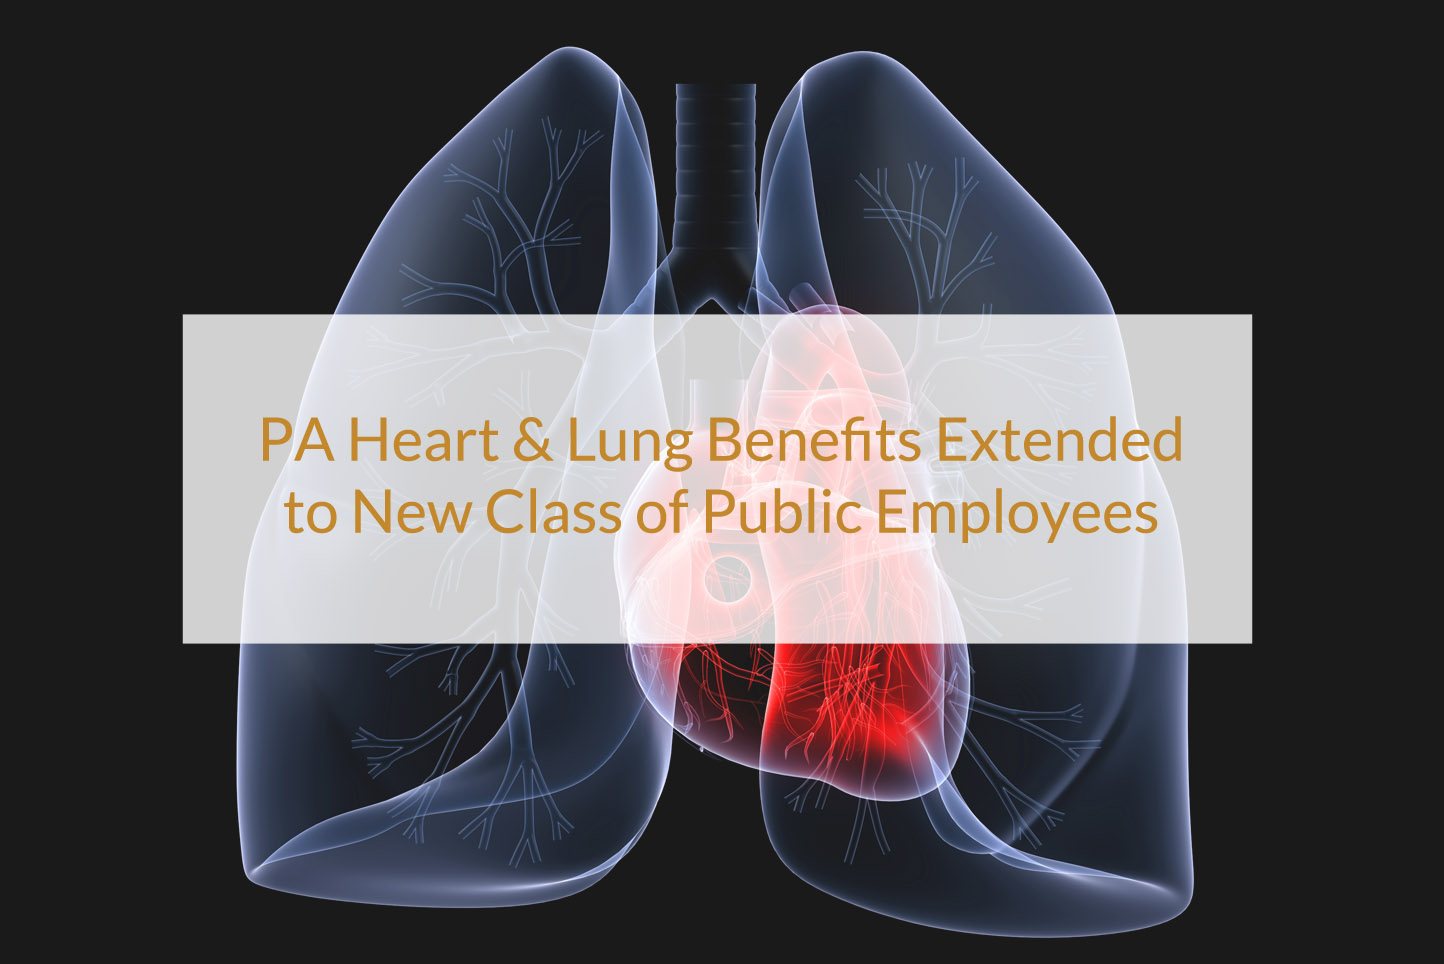 PA Heart & Lung Benefits